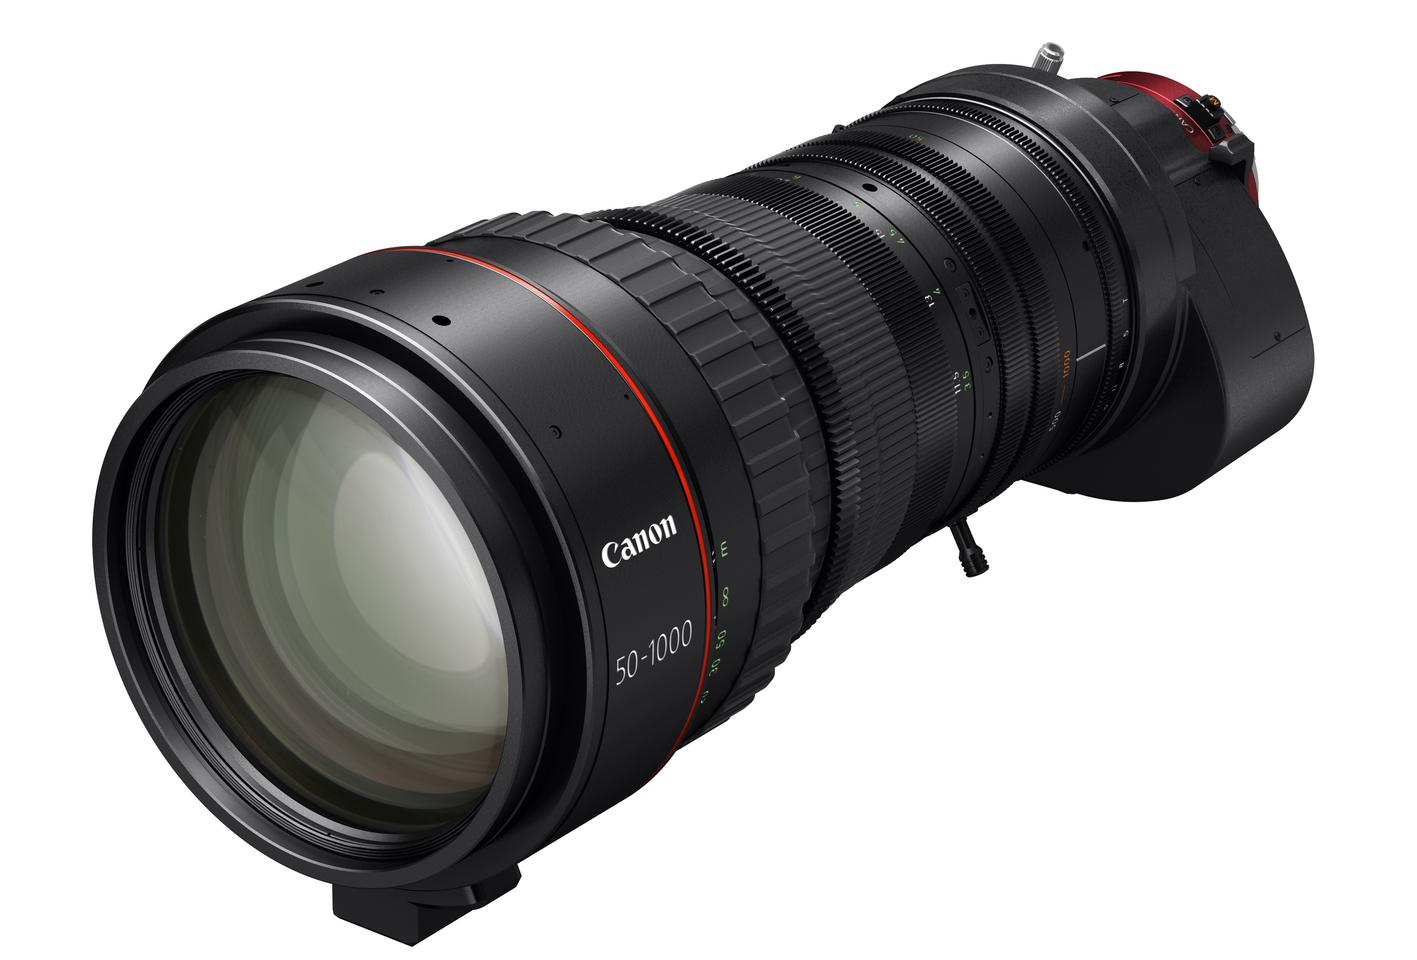 The Canon CN20x50 cine-servo lens offers a native 50-1000-mm focal range, which is extendable to 75-1500-mm with a built-in extender